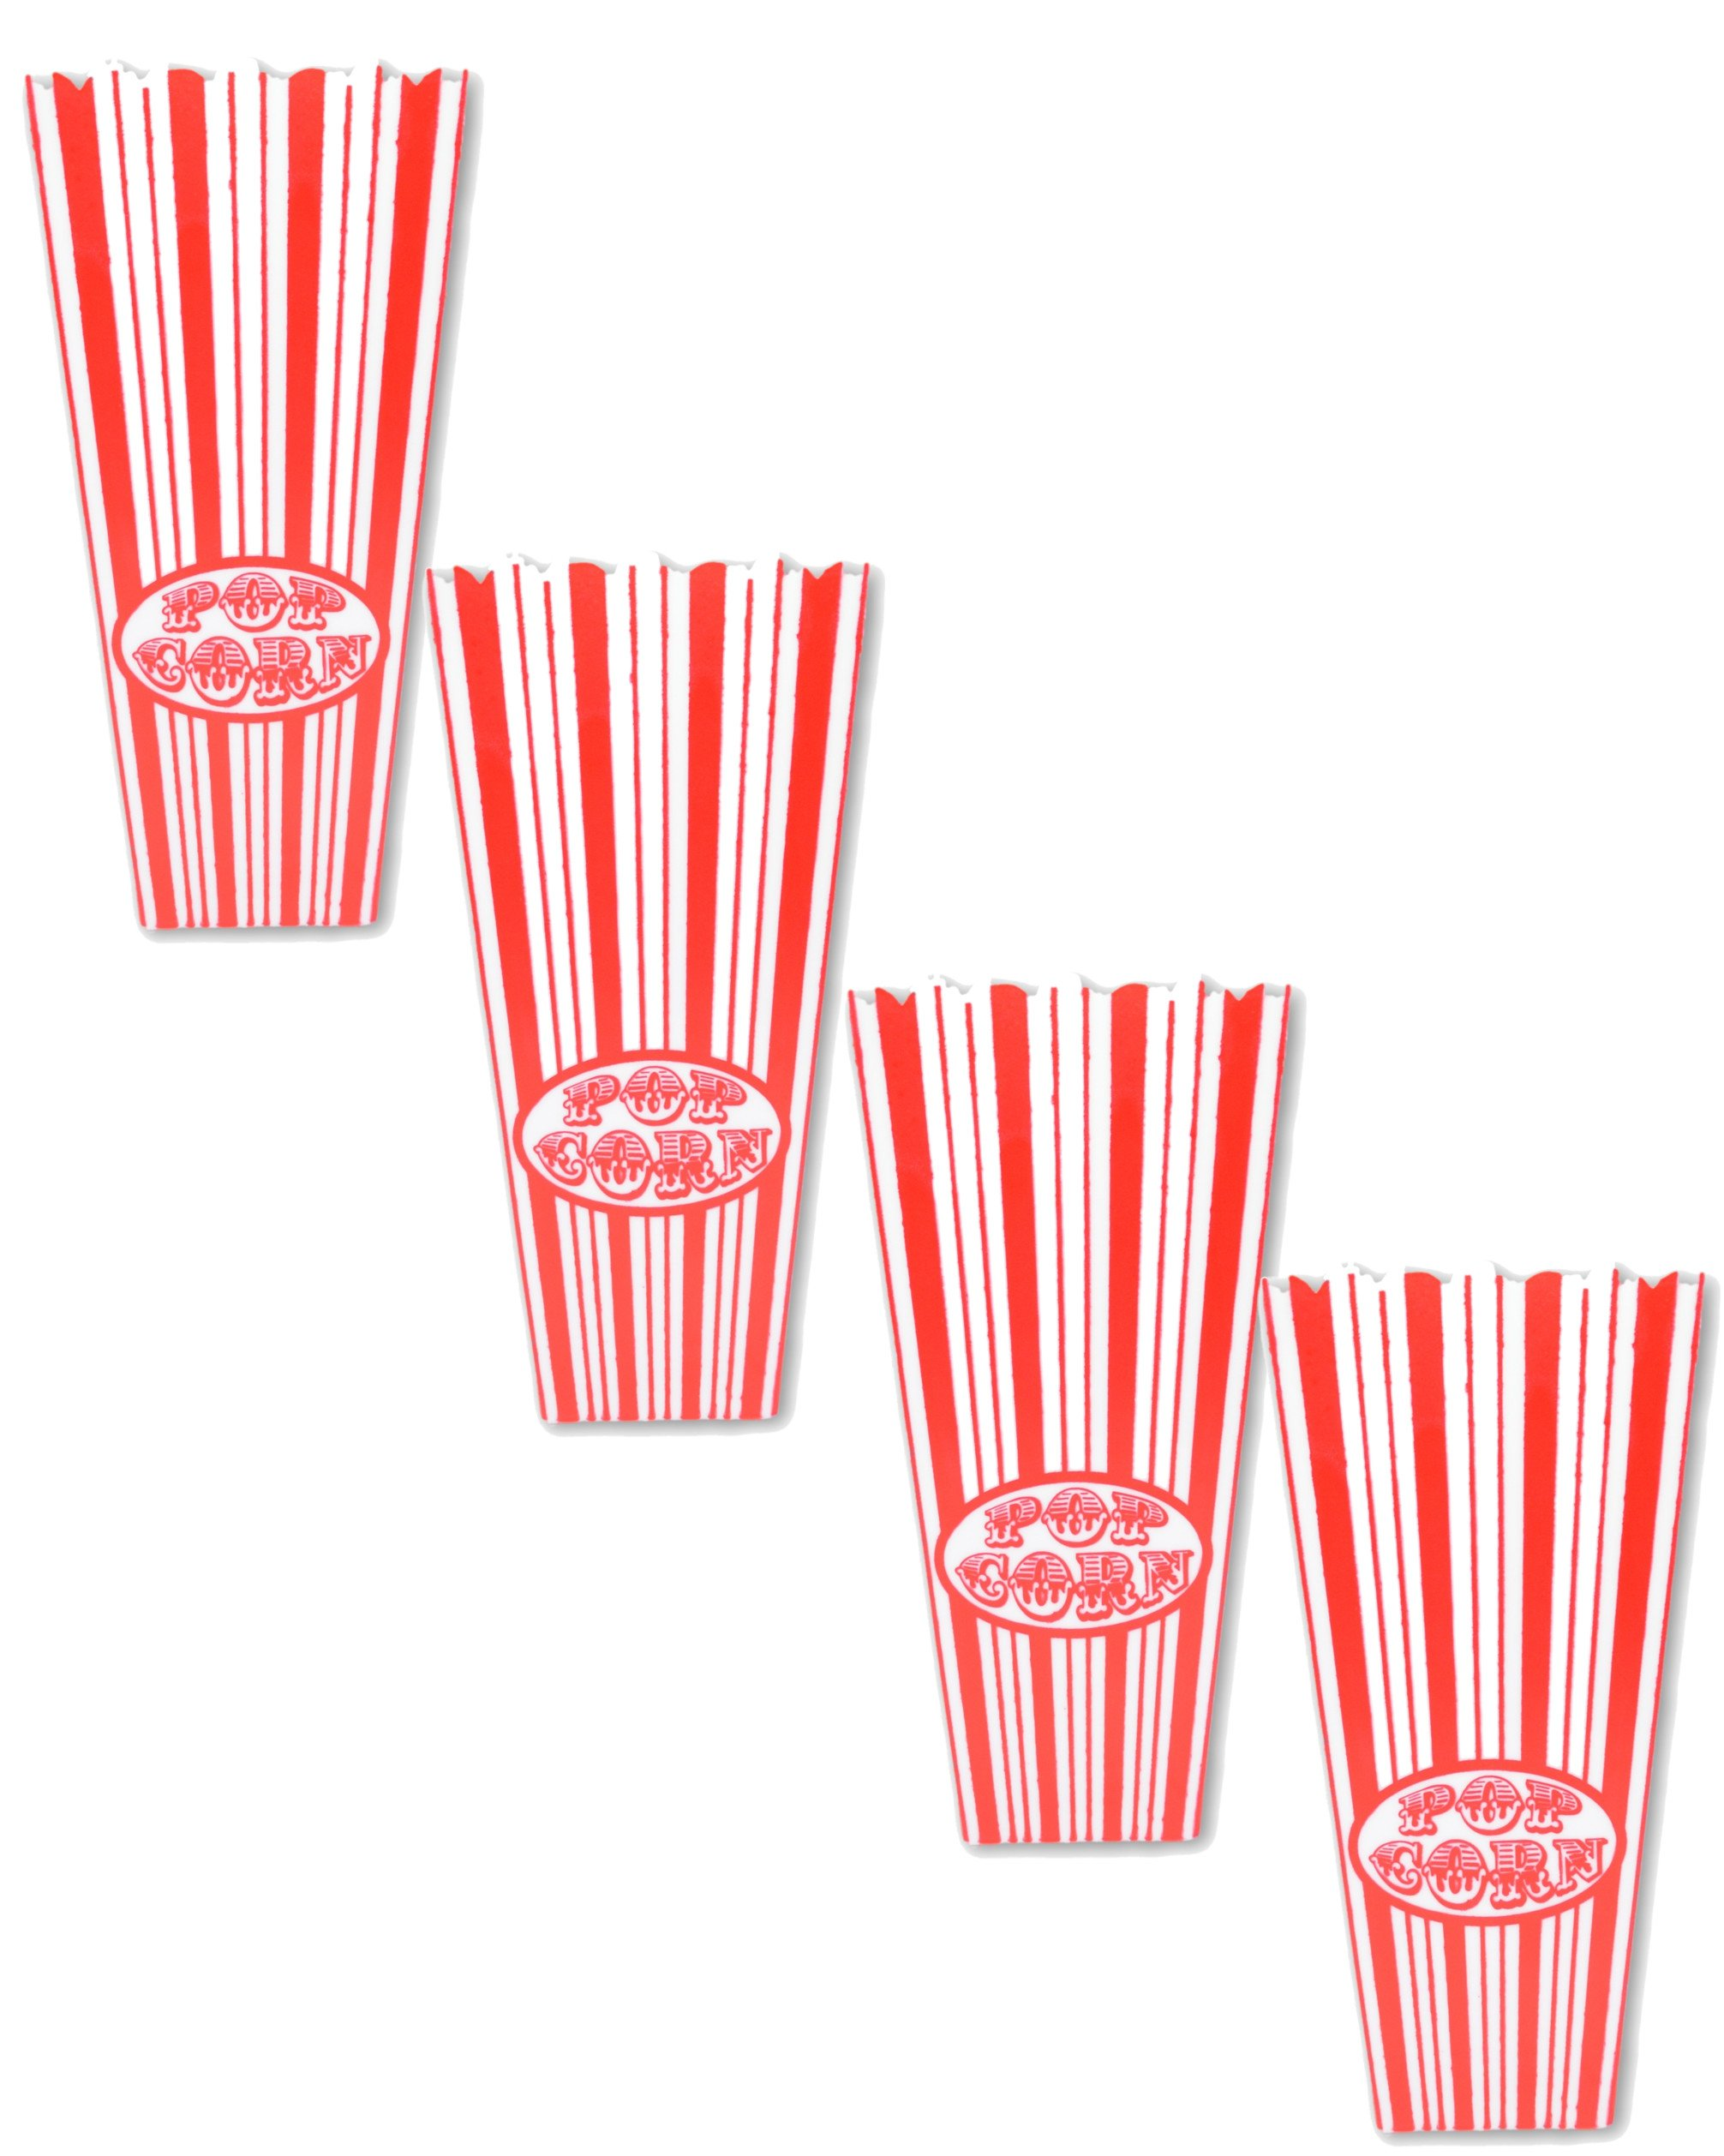 Movie Popcorn Bucket 4 piece Set. Strong Durable Candy Cane Plastic Reusable Buckets for Memorable Family Nights in the Home Theatre. Add Popcorn, Salt, Butter and Enjoy!